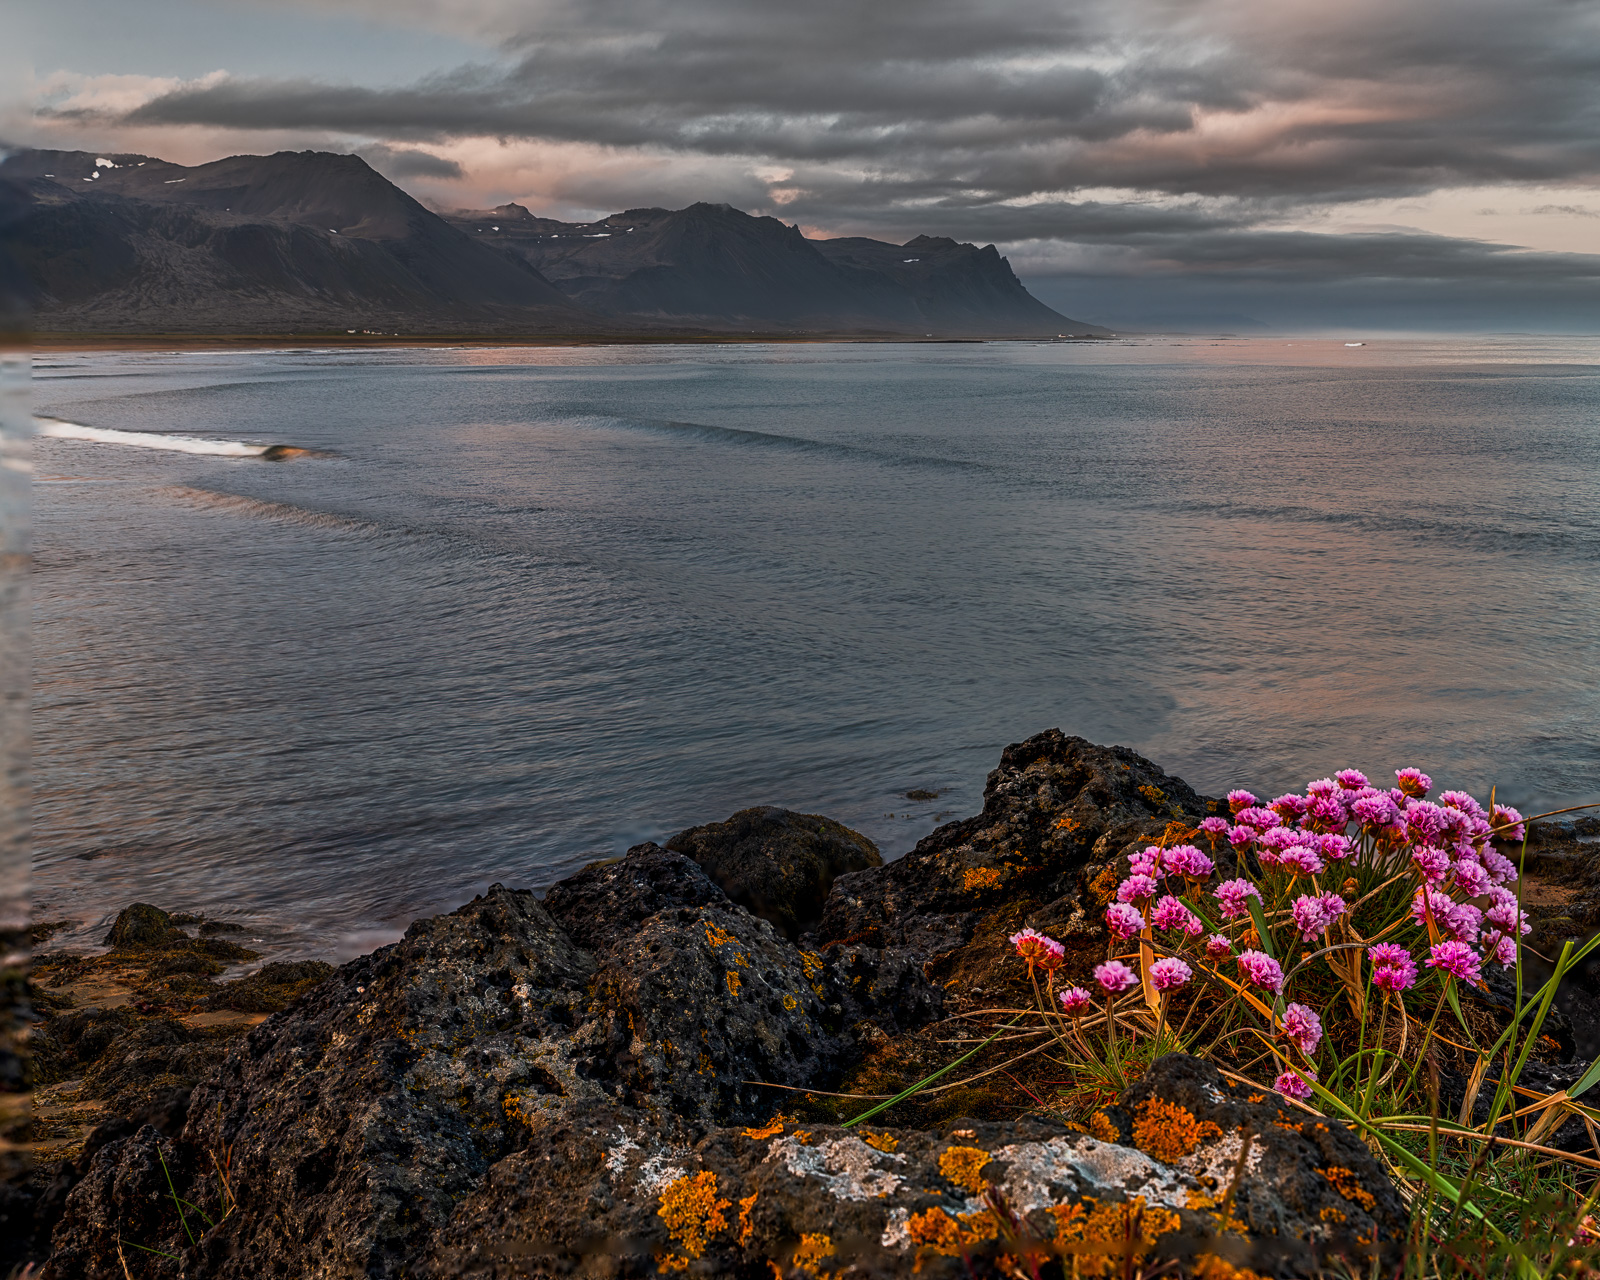 Colorful wildflowers along The Snaefellsnes Peninsula